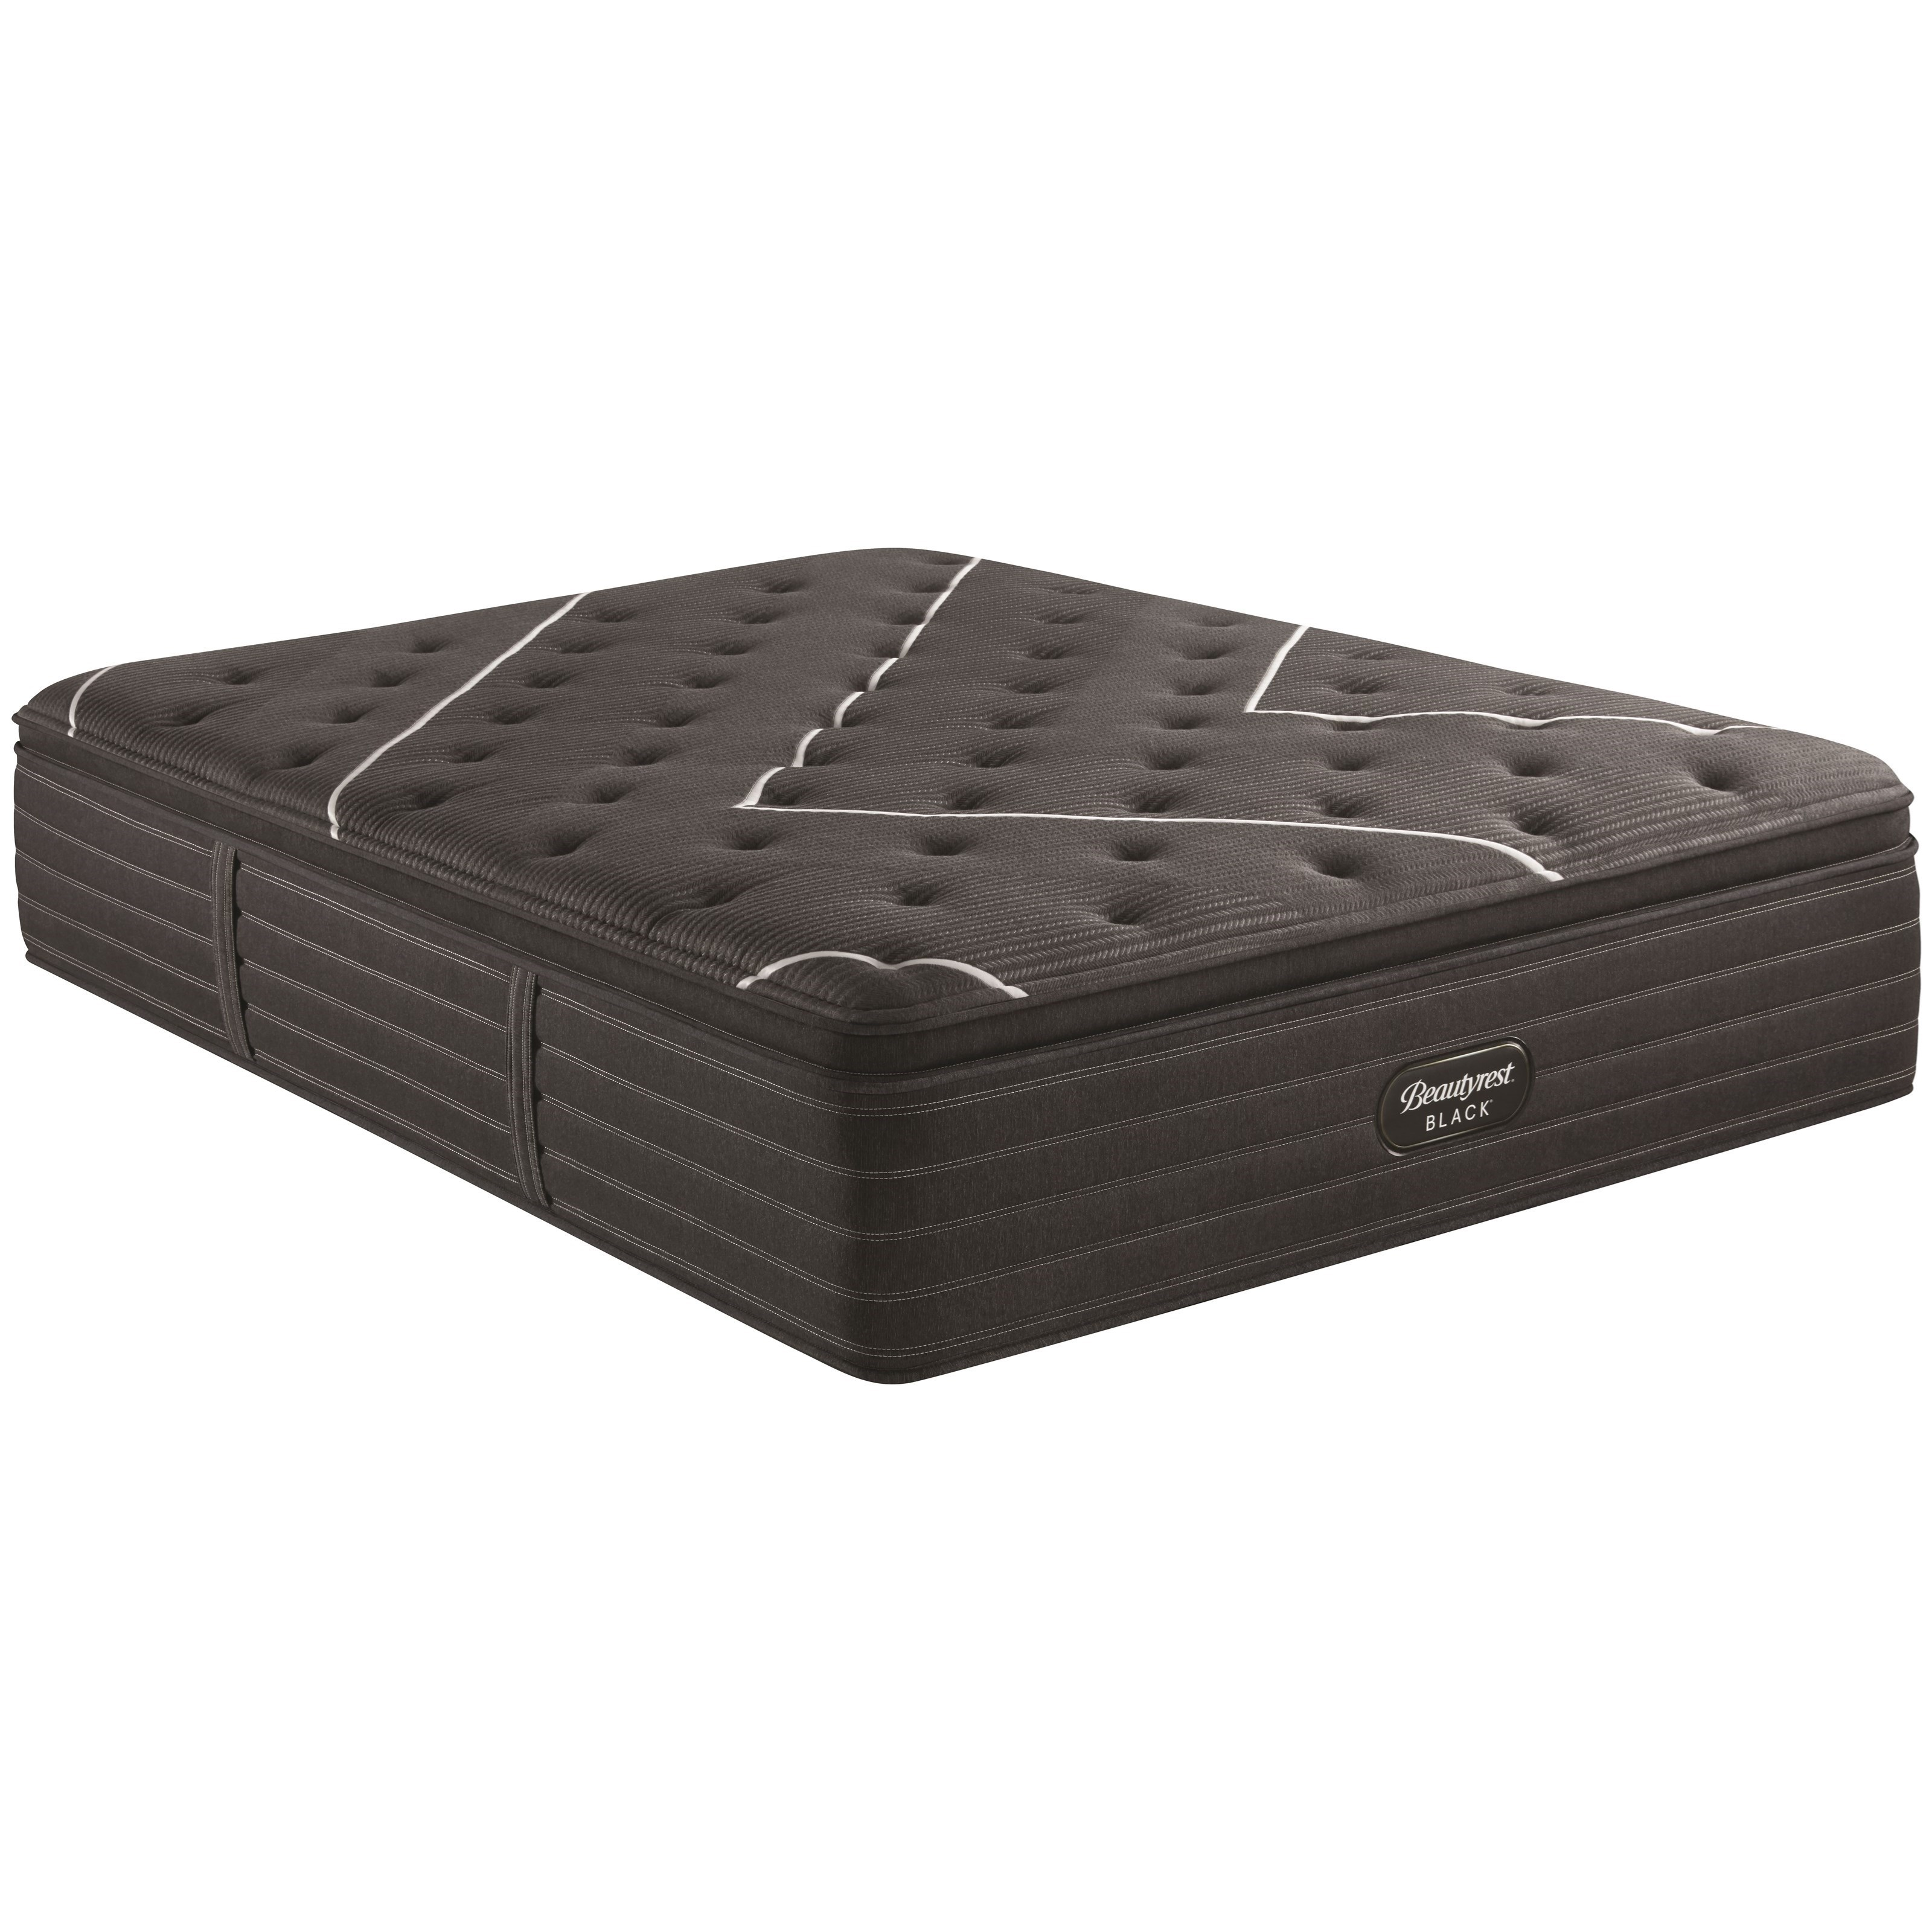 "Cal King 16"" Premium Mattress"